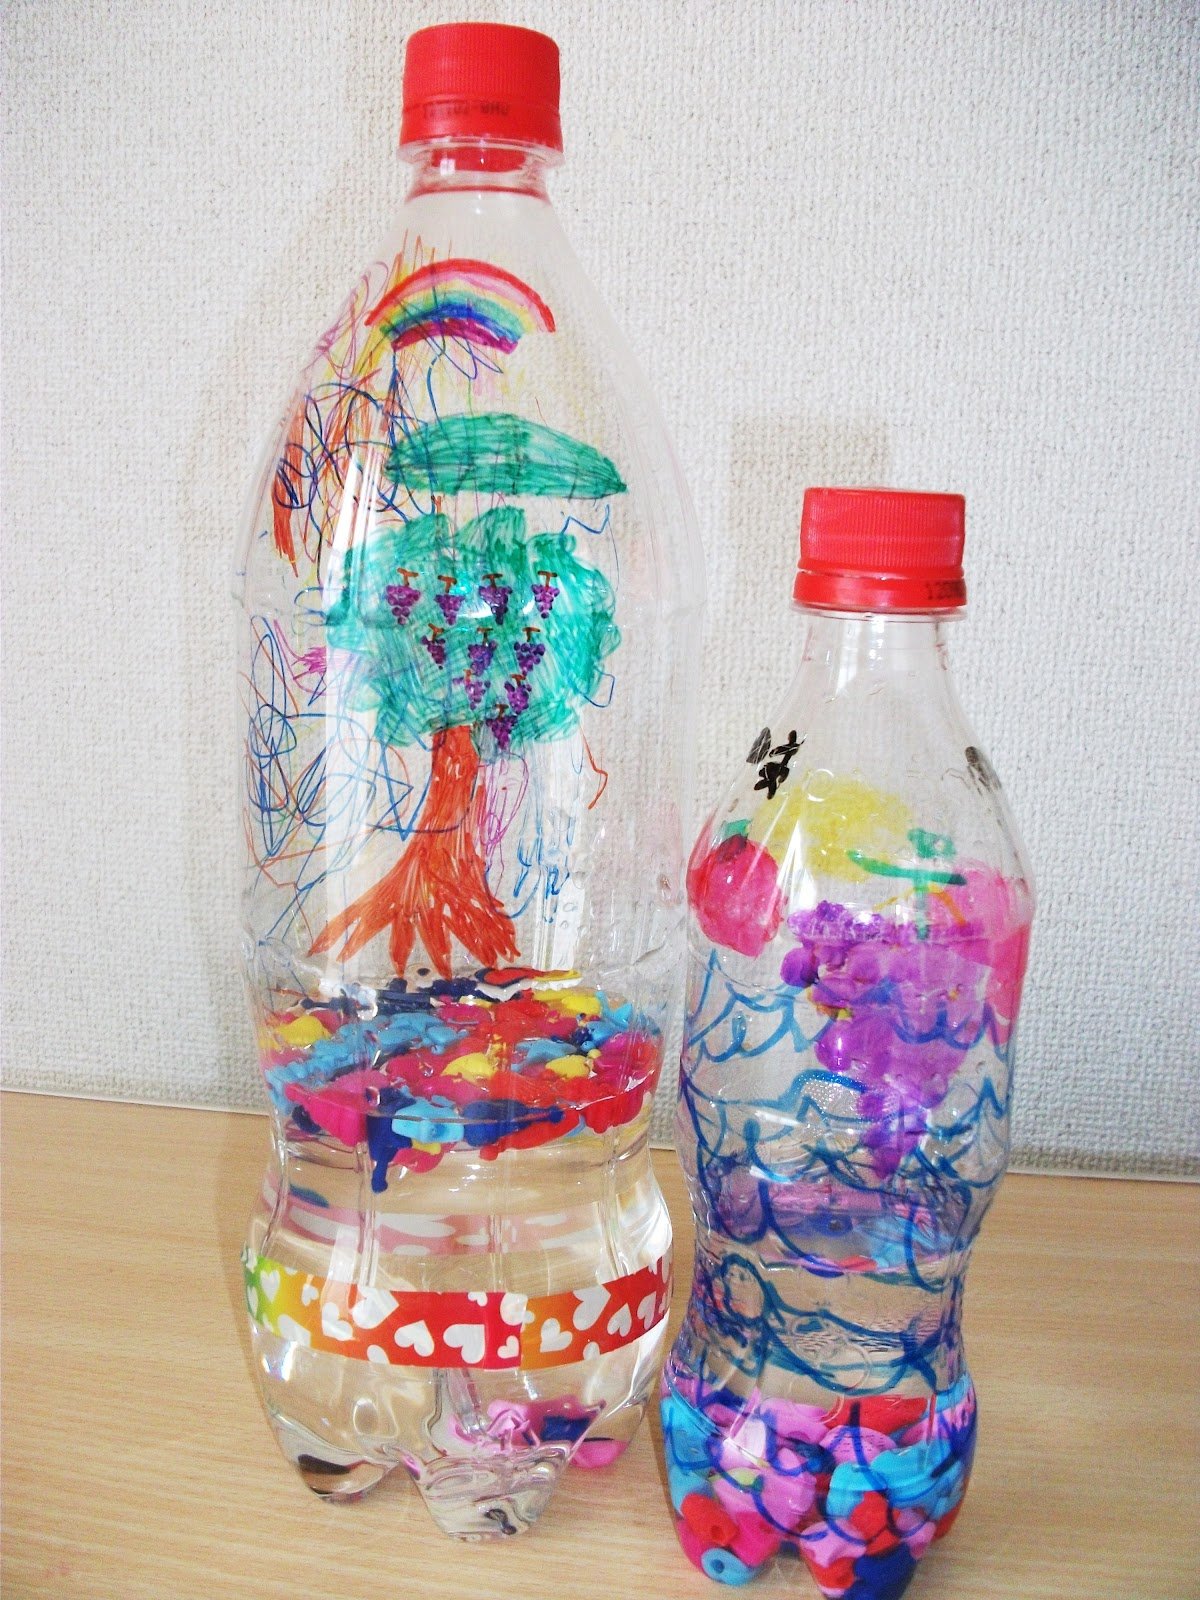 preschool crafts for kids water bottle shaker craft